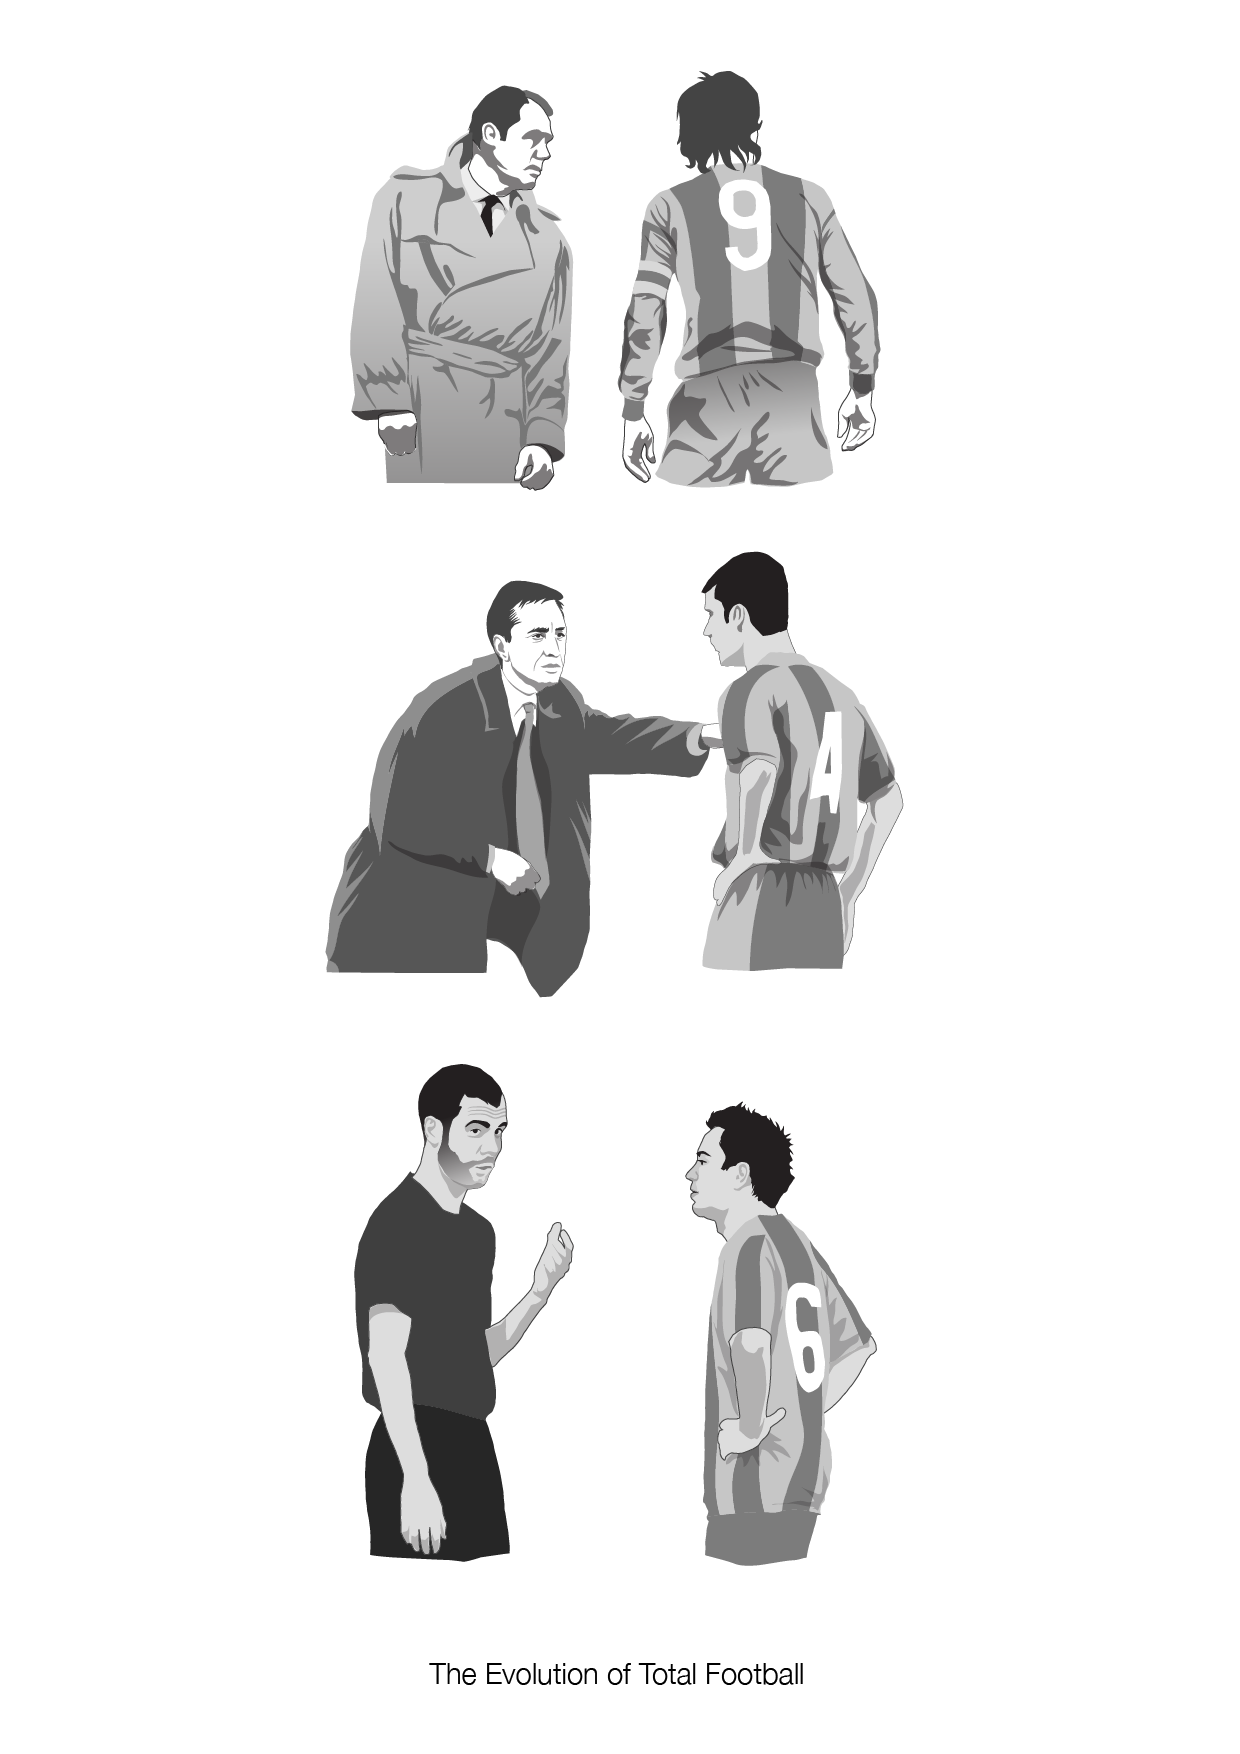 danleydon:  The Evolution of Total Football  Discovered this tumblr today. Really great artwork and ideas